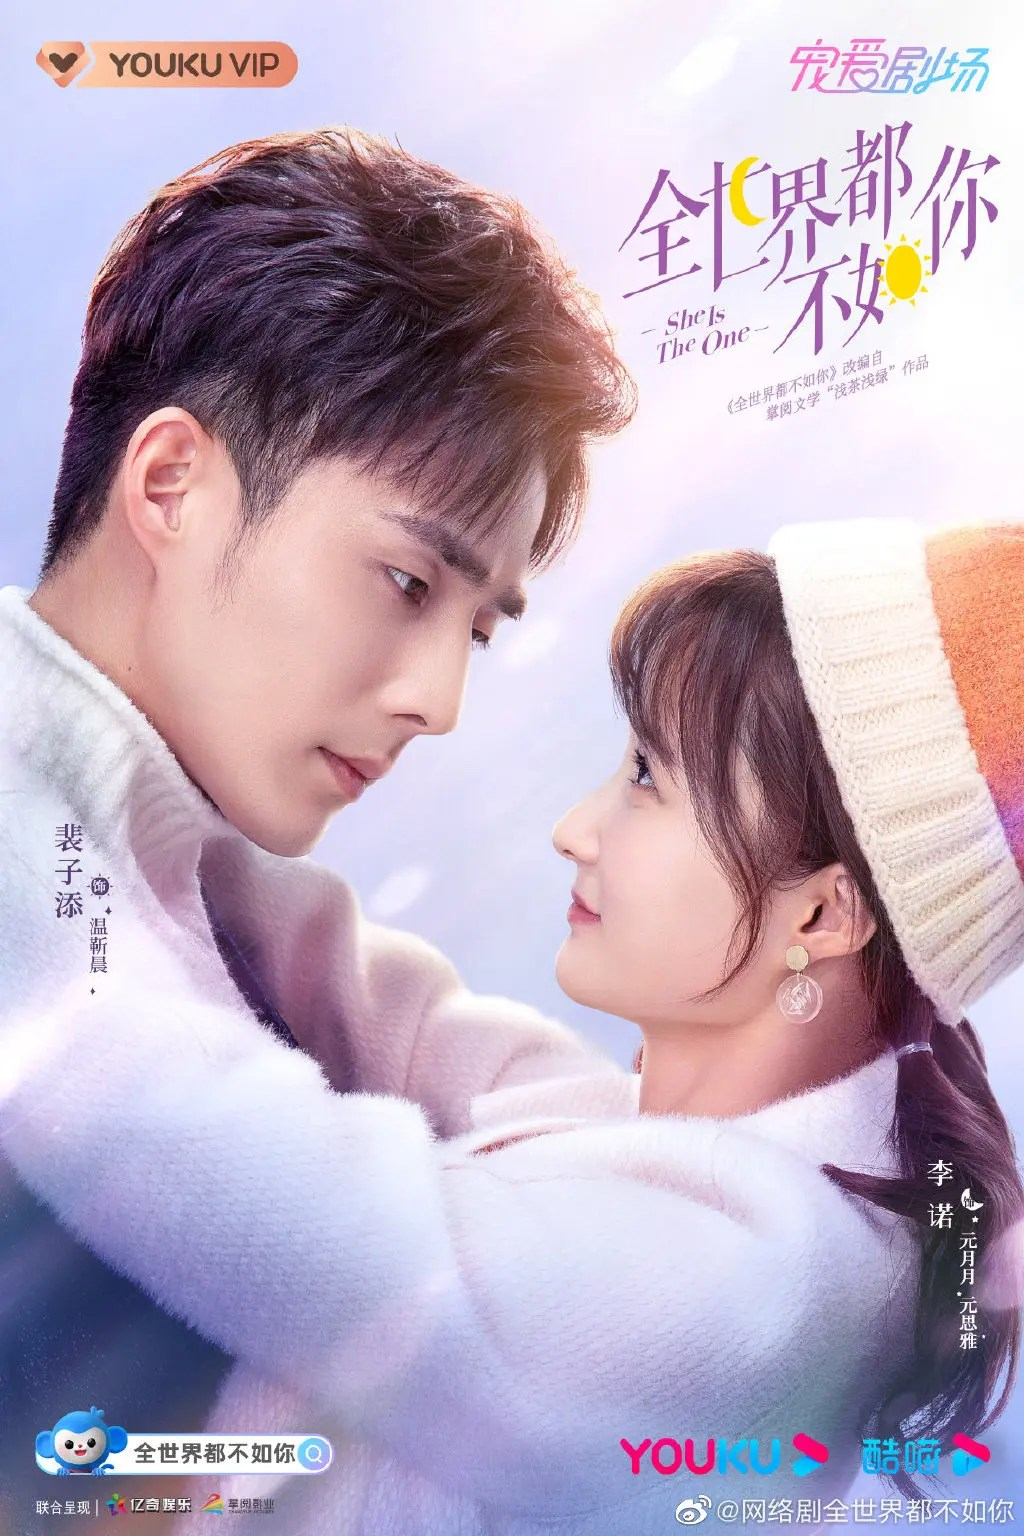 Rich girl chinese drama guy ❣️ dating best 2018 2021 poor rich guy